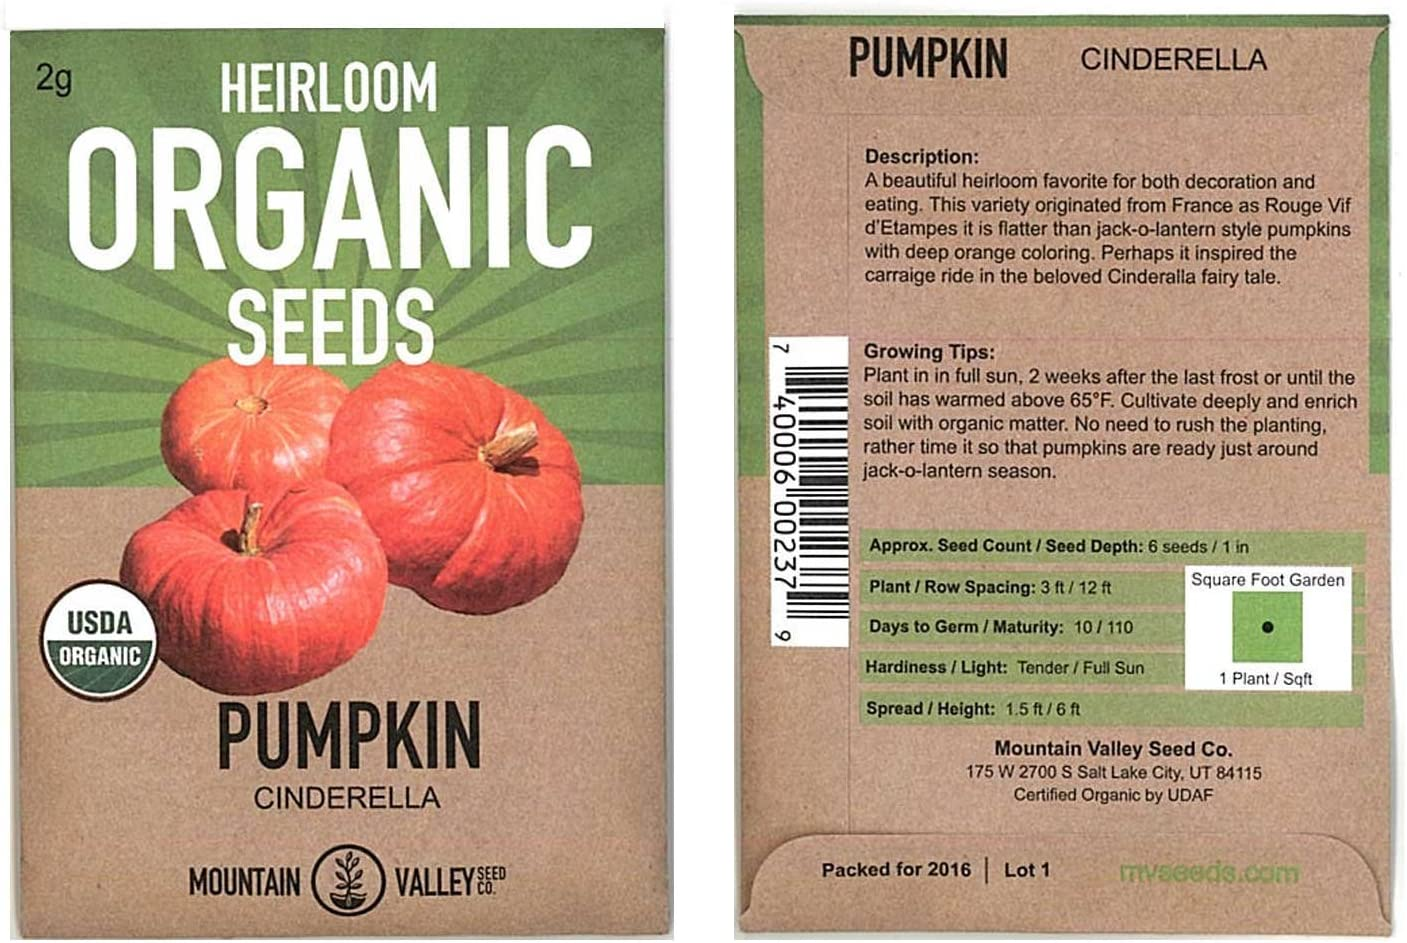 Organic Cinderella Pumpkin Garden Seeds - 2 Gram Seed Packet - French Heirloom Pumpkins - Non-GMO - Red-Orange Variety - Vegetable Gardening Seed